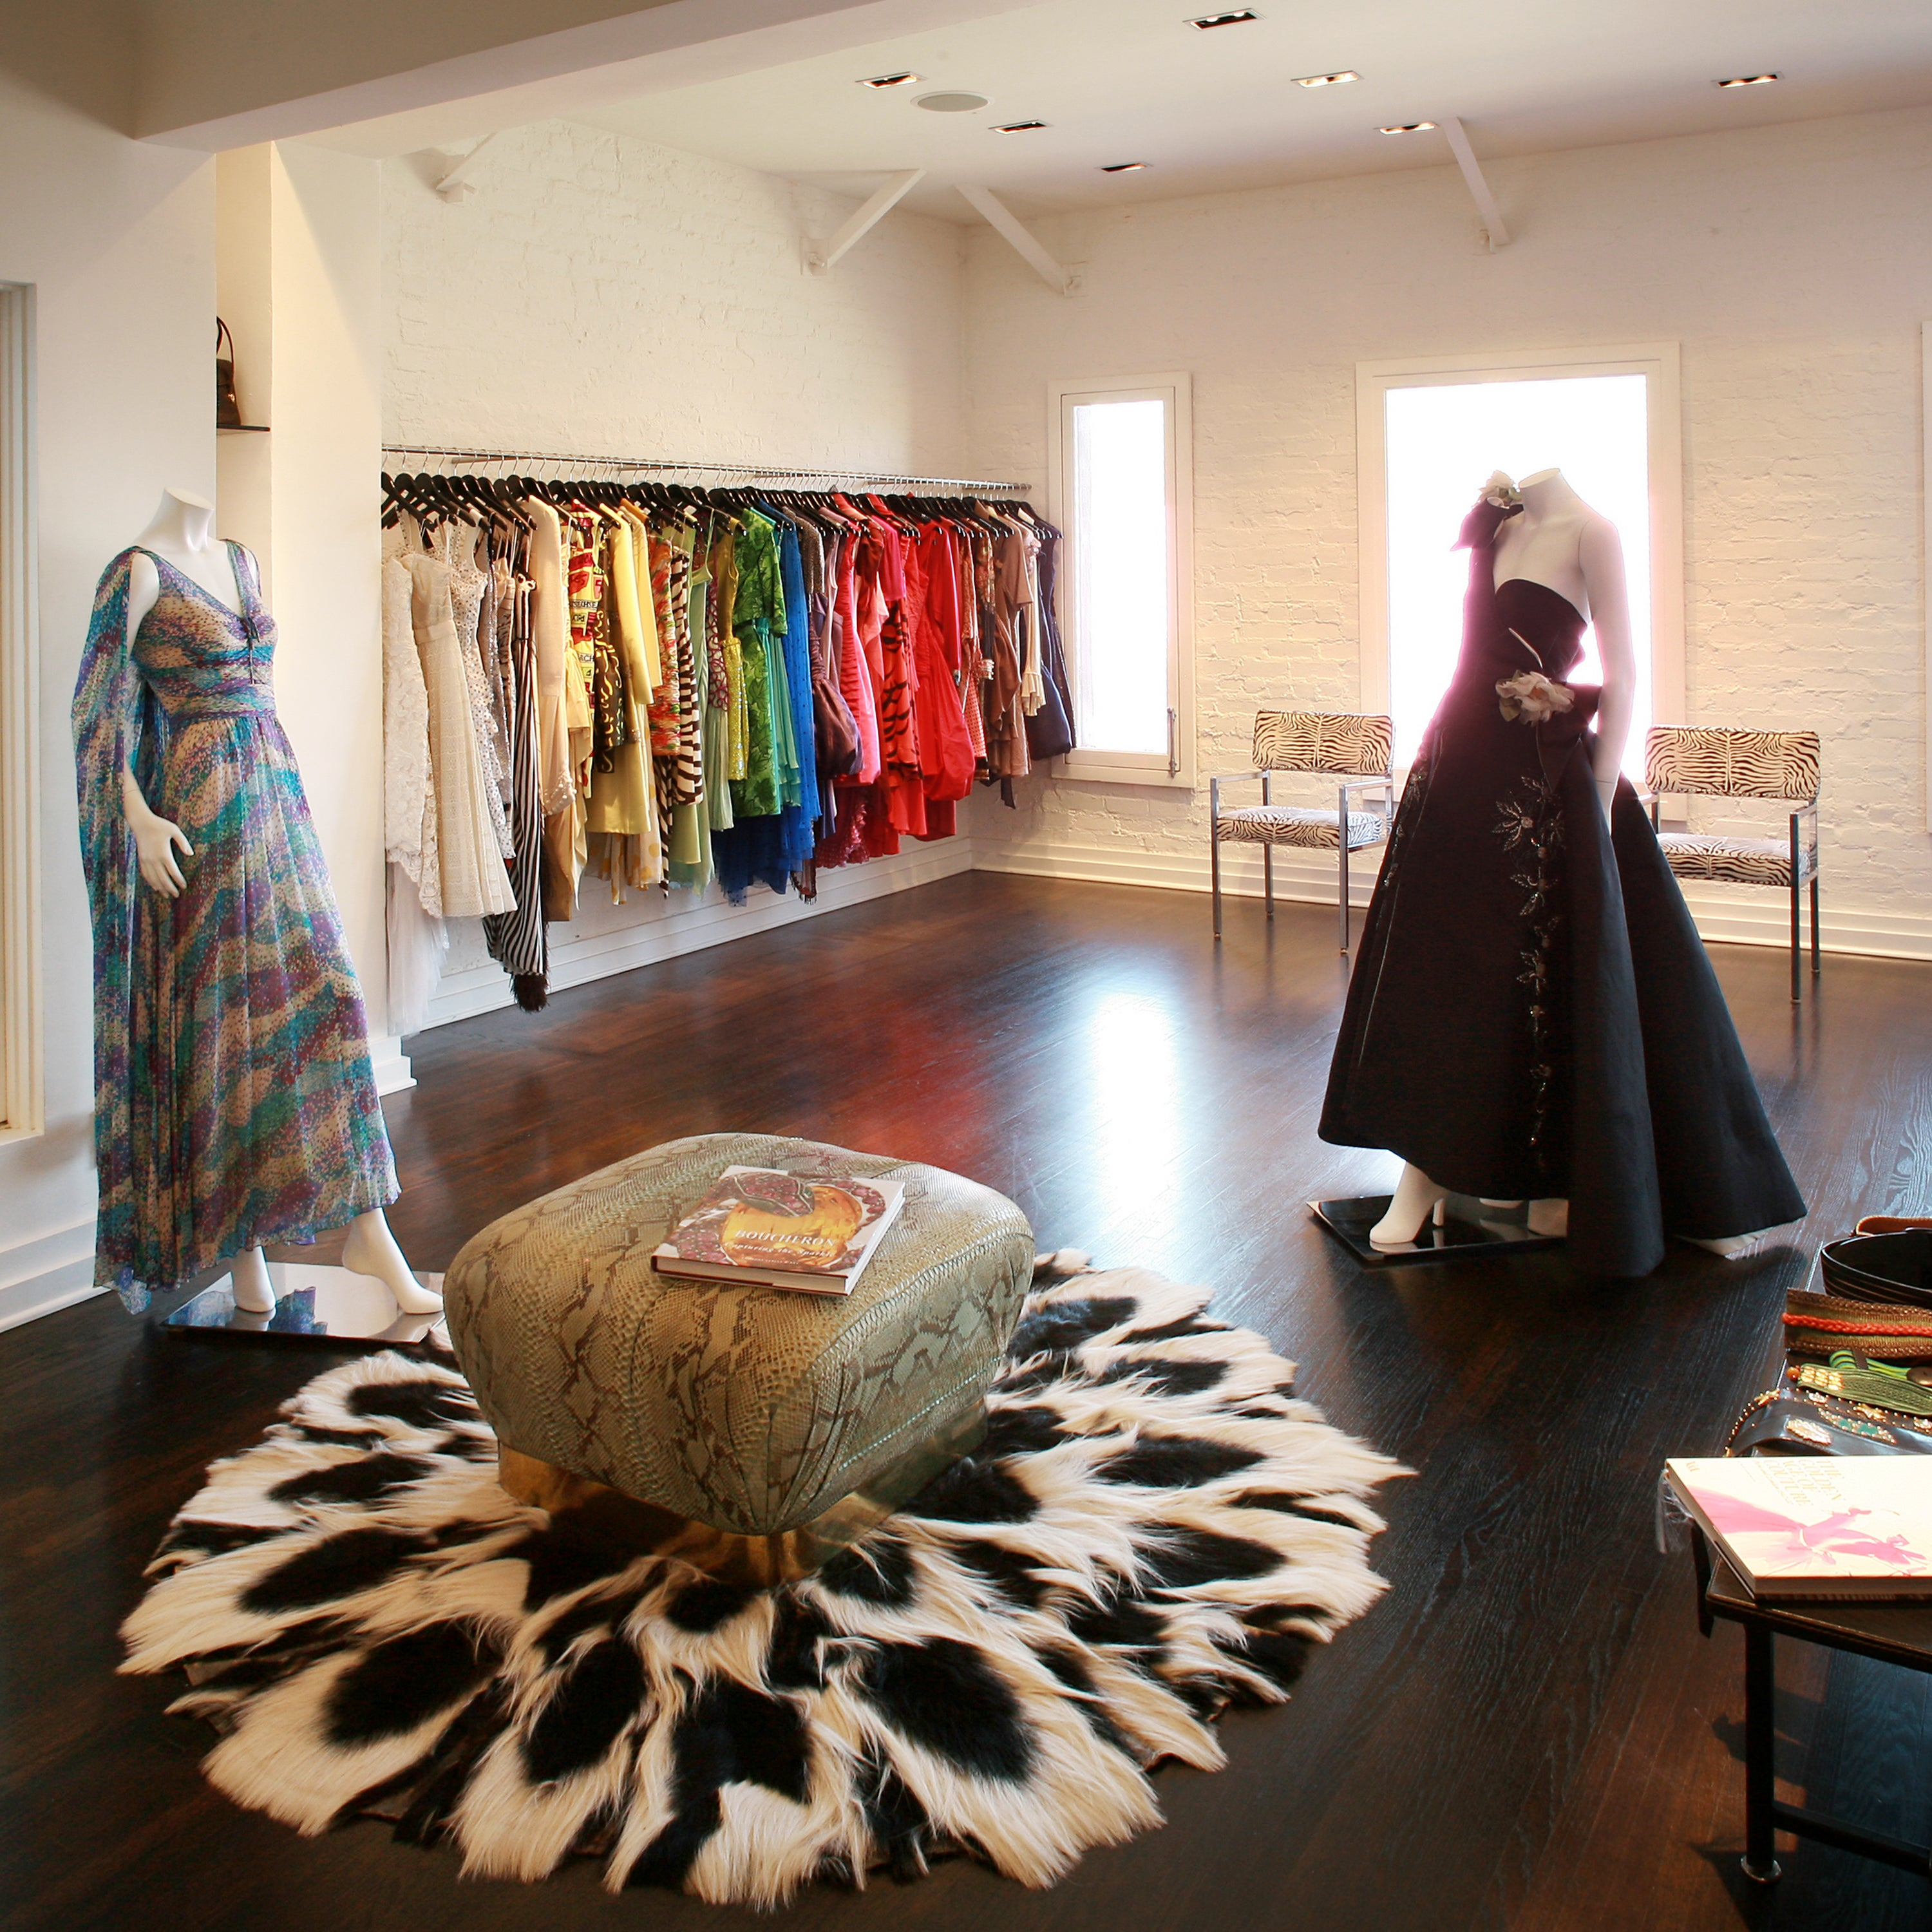 100 consignment stores in los angeles area best 25 for Consignment wedding dresses los angeles